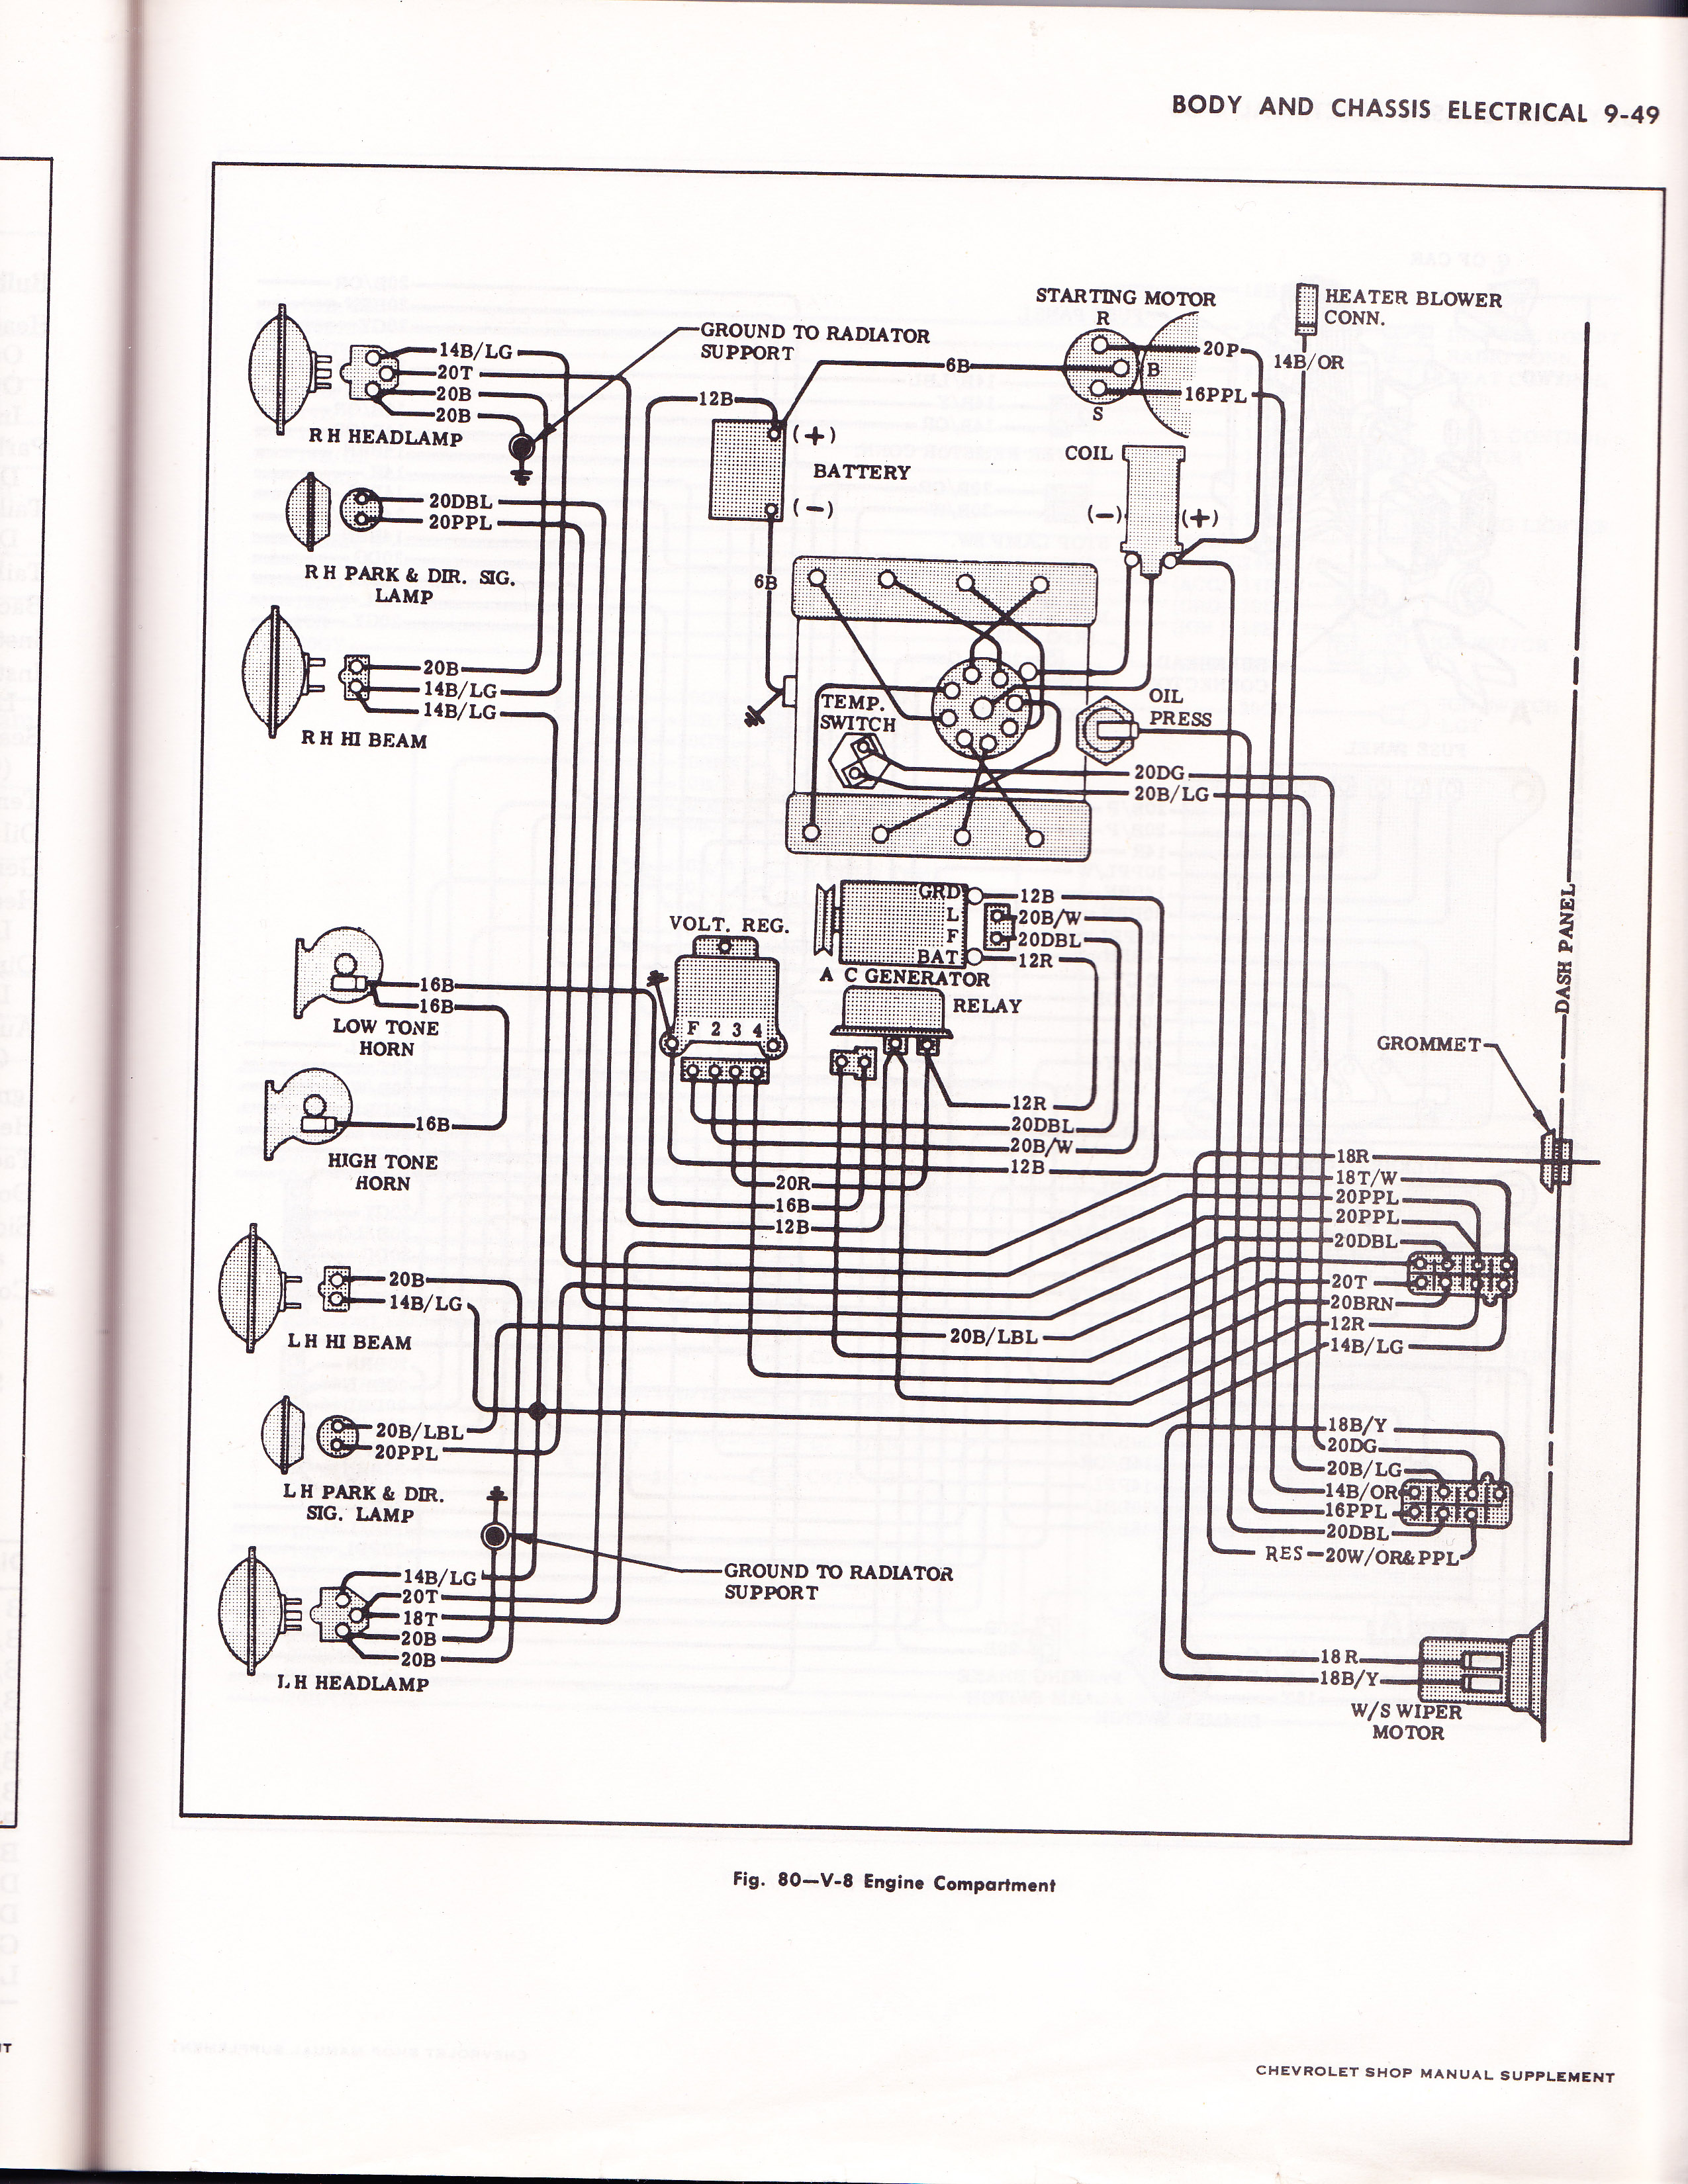 DIAGRAM] Street Rod Wiring Diagram Fuse Box FULL Version HD Quality Fuse Box  - AUTOCARROSHOP.GFNEWS.ITFREE Diagram Database